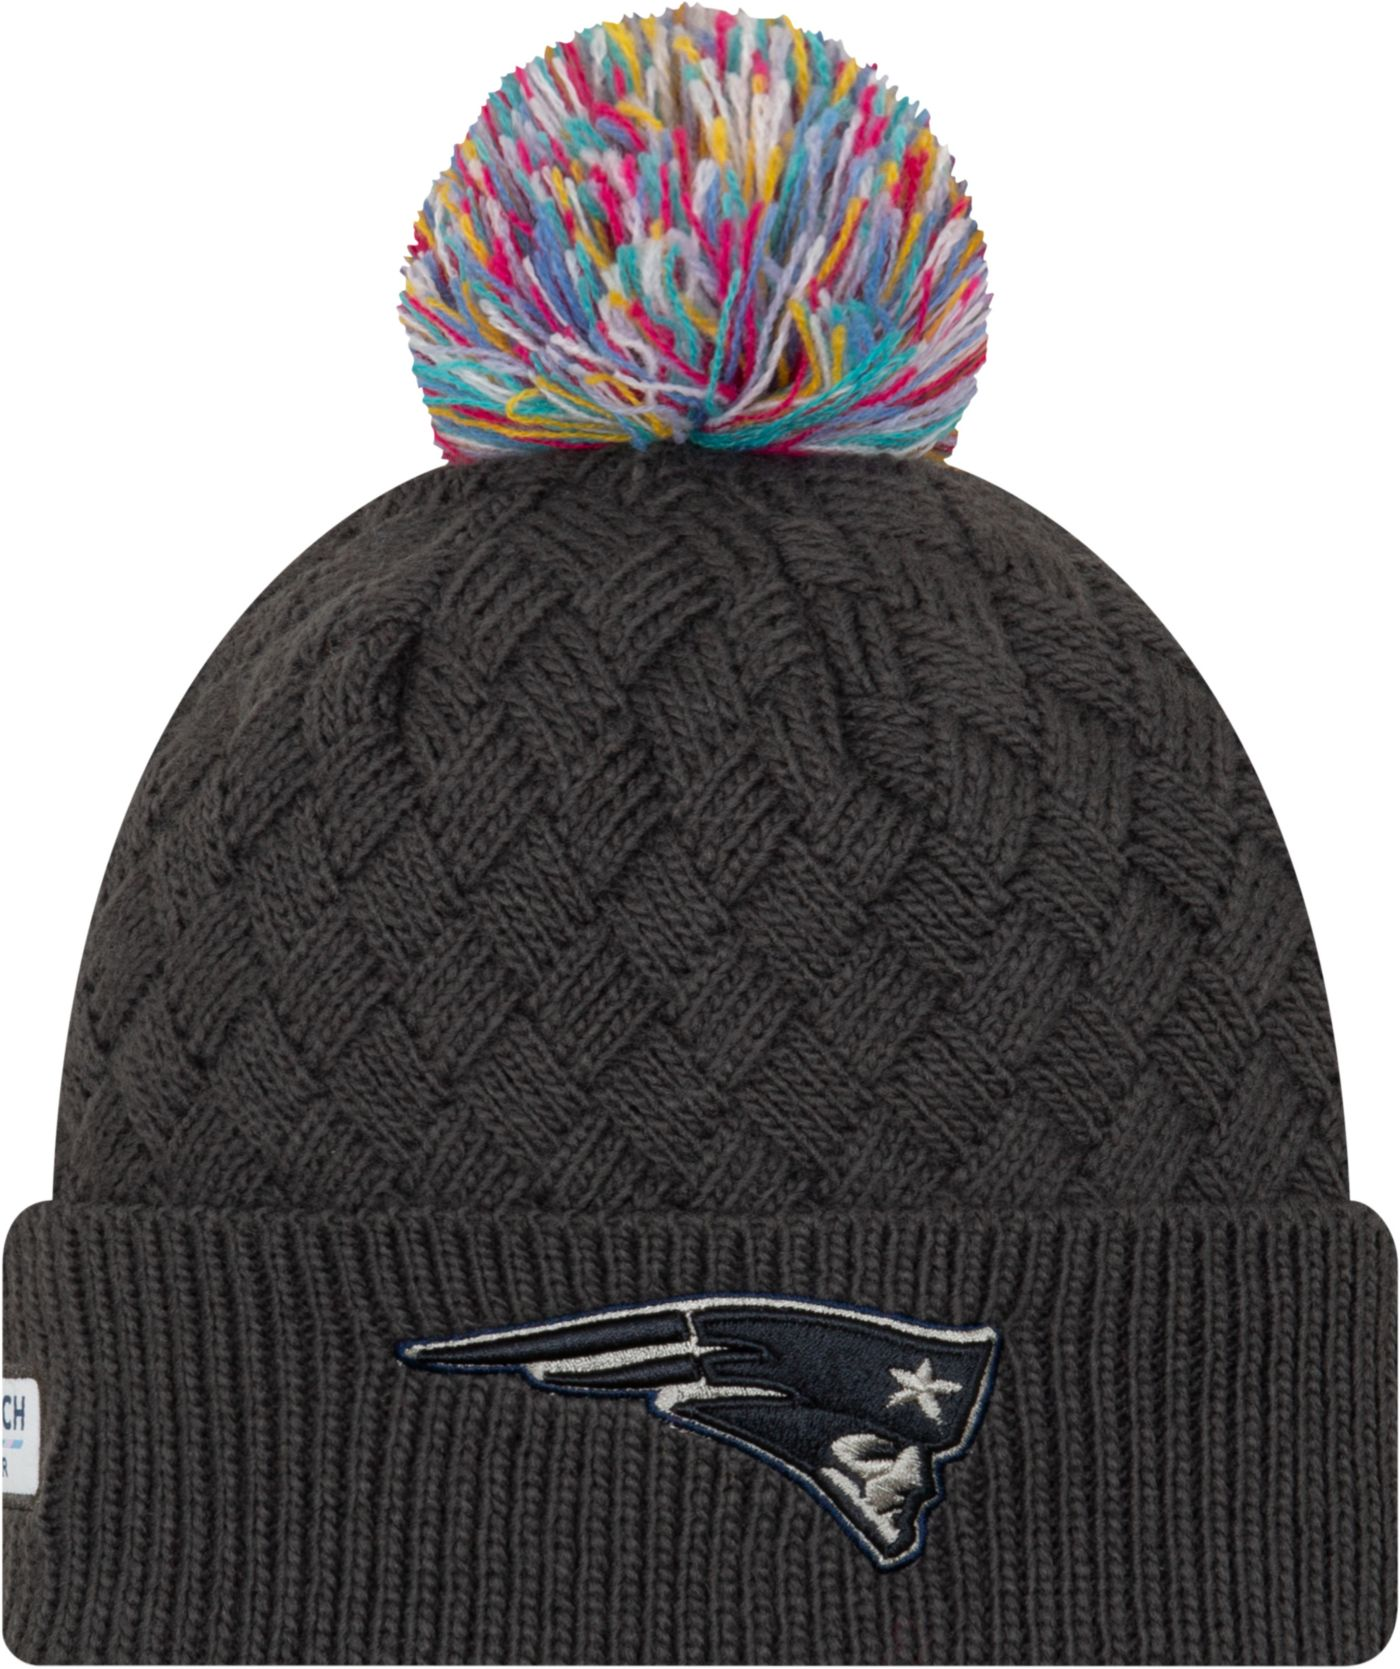 New Era Women's New England Patriots Sideline Crucial Catch Graphite Pom Knit